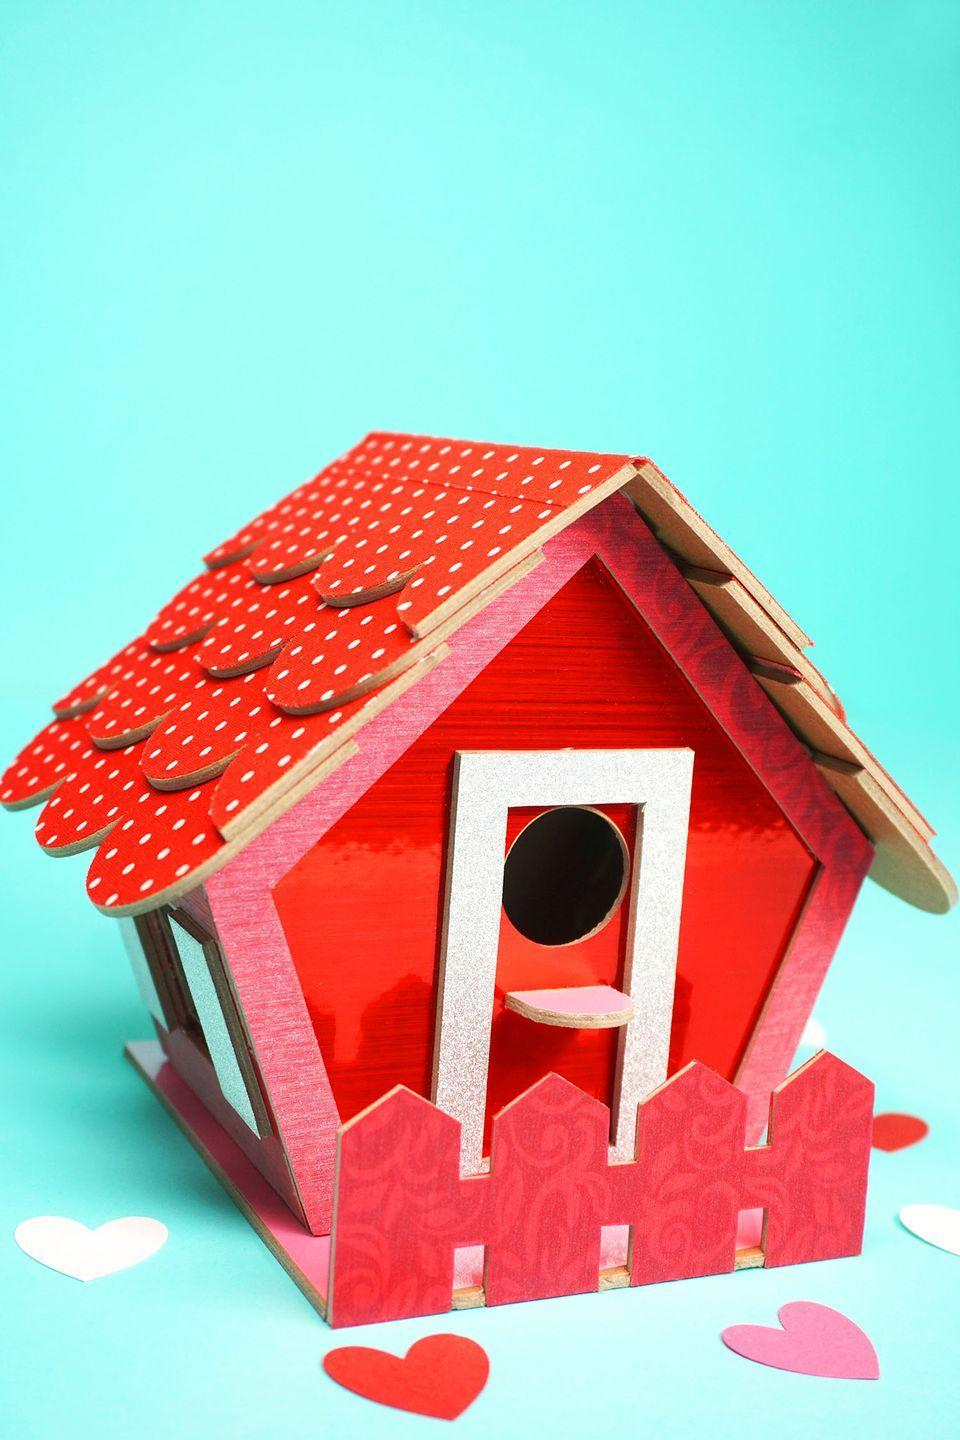 "<p>Put this bright red and pink birdhouse together with your kids. They'll definitely have the coolest Valentine box at school!</p><p><strong>Get the tutorial at <a href=""https://www.happinessishomemade.net/birdhouse-valentine-card-box/"" rel=""nofollow noopener"" target=""_blank"" data-ylk=""slk:Happiness Is Homemade"" class=""link rapid-noclick-resp"">Happiness Is Homemade</a>.</strong></p><p><a class=""link rapid-noclick-resp"" href=""https://www.amazon.com/Cricut-PC2004195-Maker-Champagne/dp/B072VYPWM4/?tag=syn-yahoo-20&ascsubtag=%5Bartid%7C10050.g.25844424%5Bsrc%7Cyahoo-us"" rel=""nofollow noopener"" target=""_blank"" data-ylk=""slk:SHOP CRICUT MAKERS"">SHOP CRICUT MAKERS</a></p>"